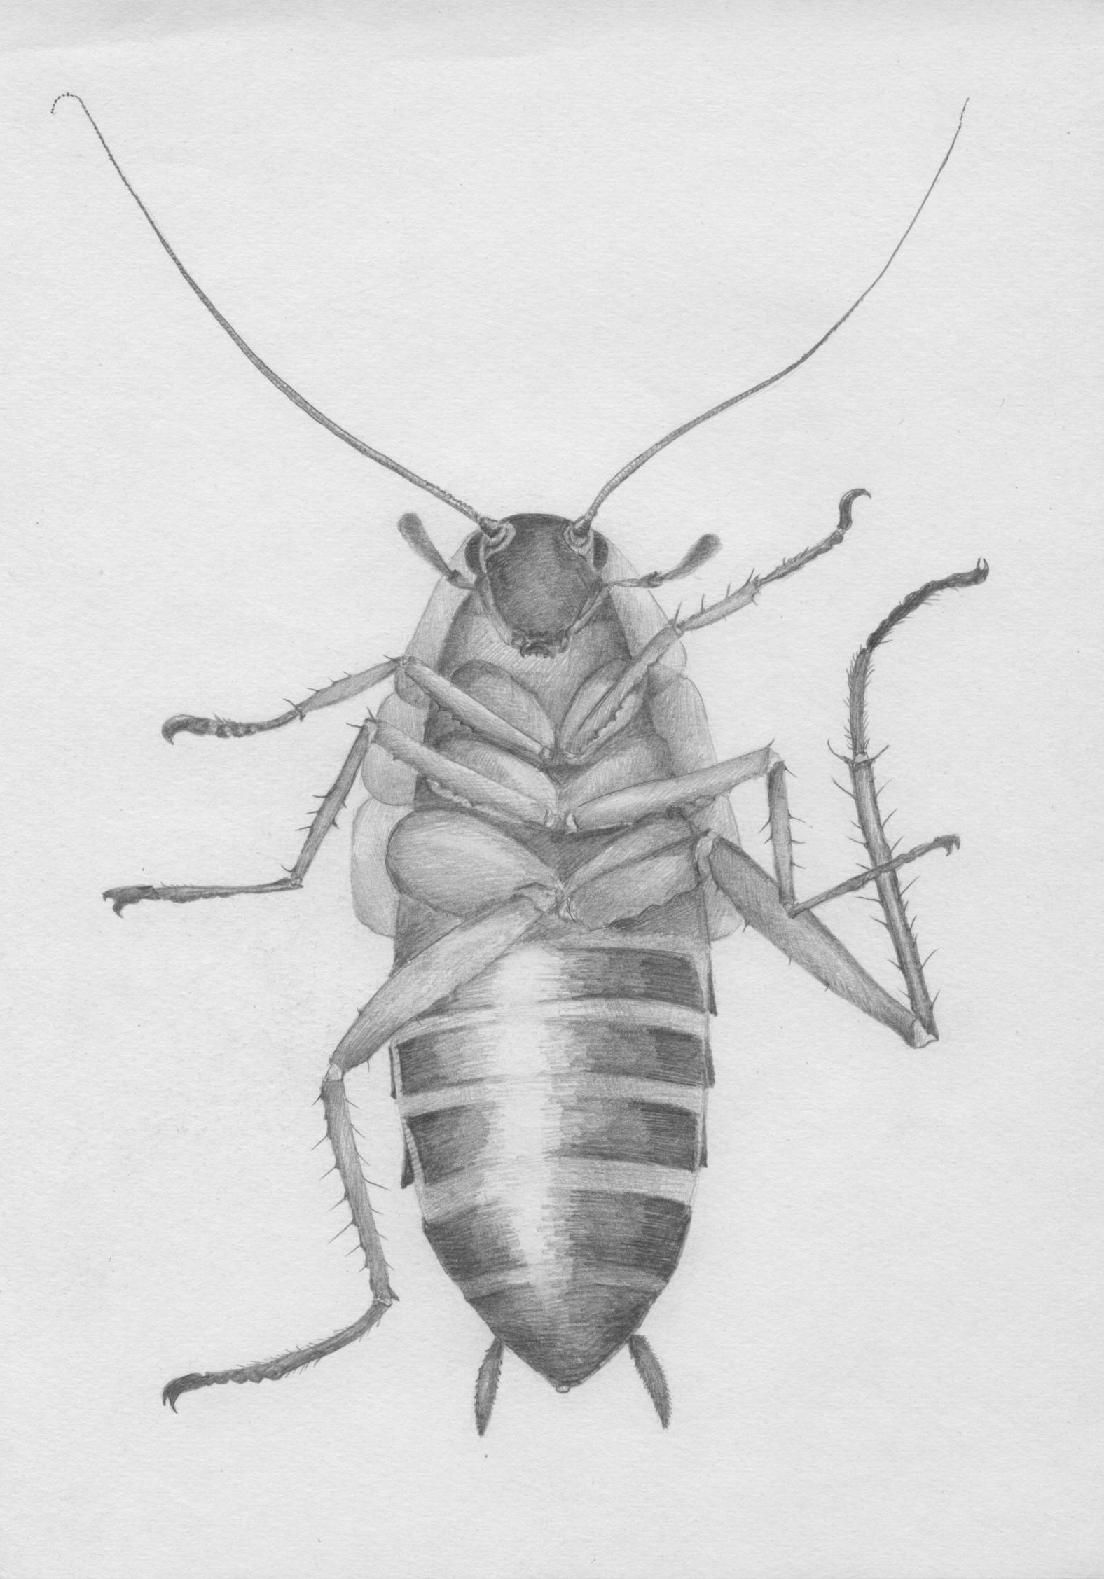 cockroach | Denas | Pinterest | Artsy and Illustrations